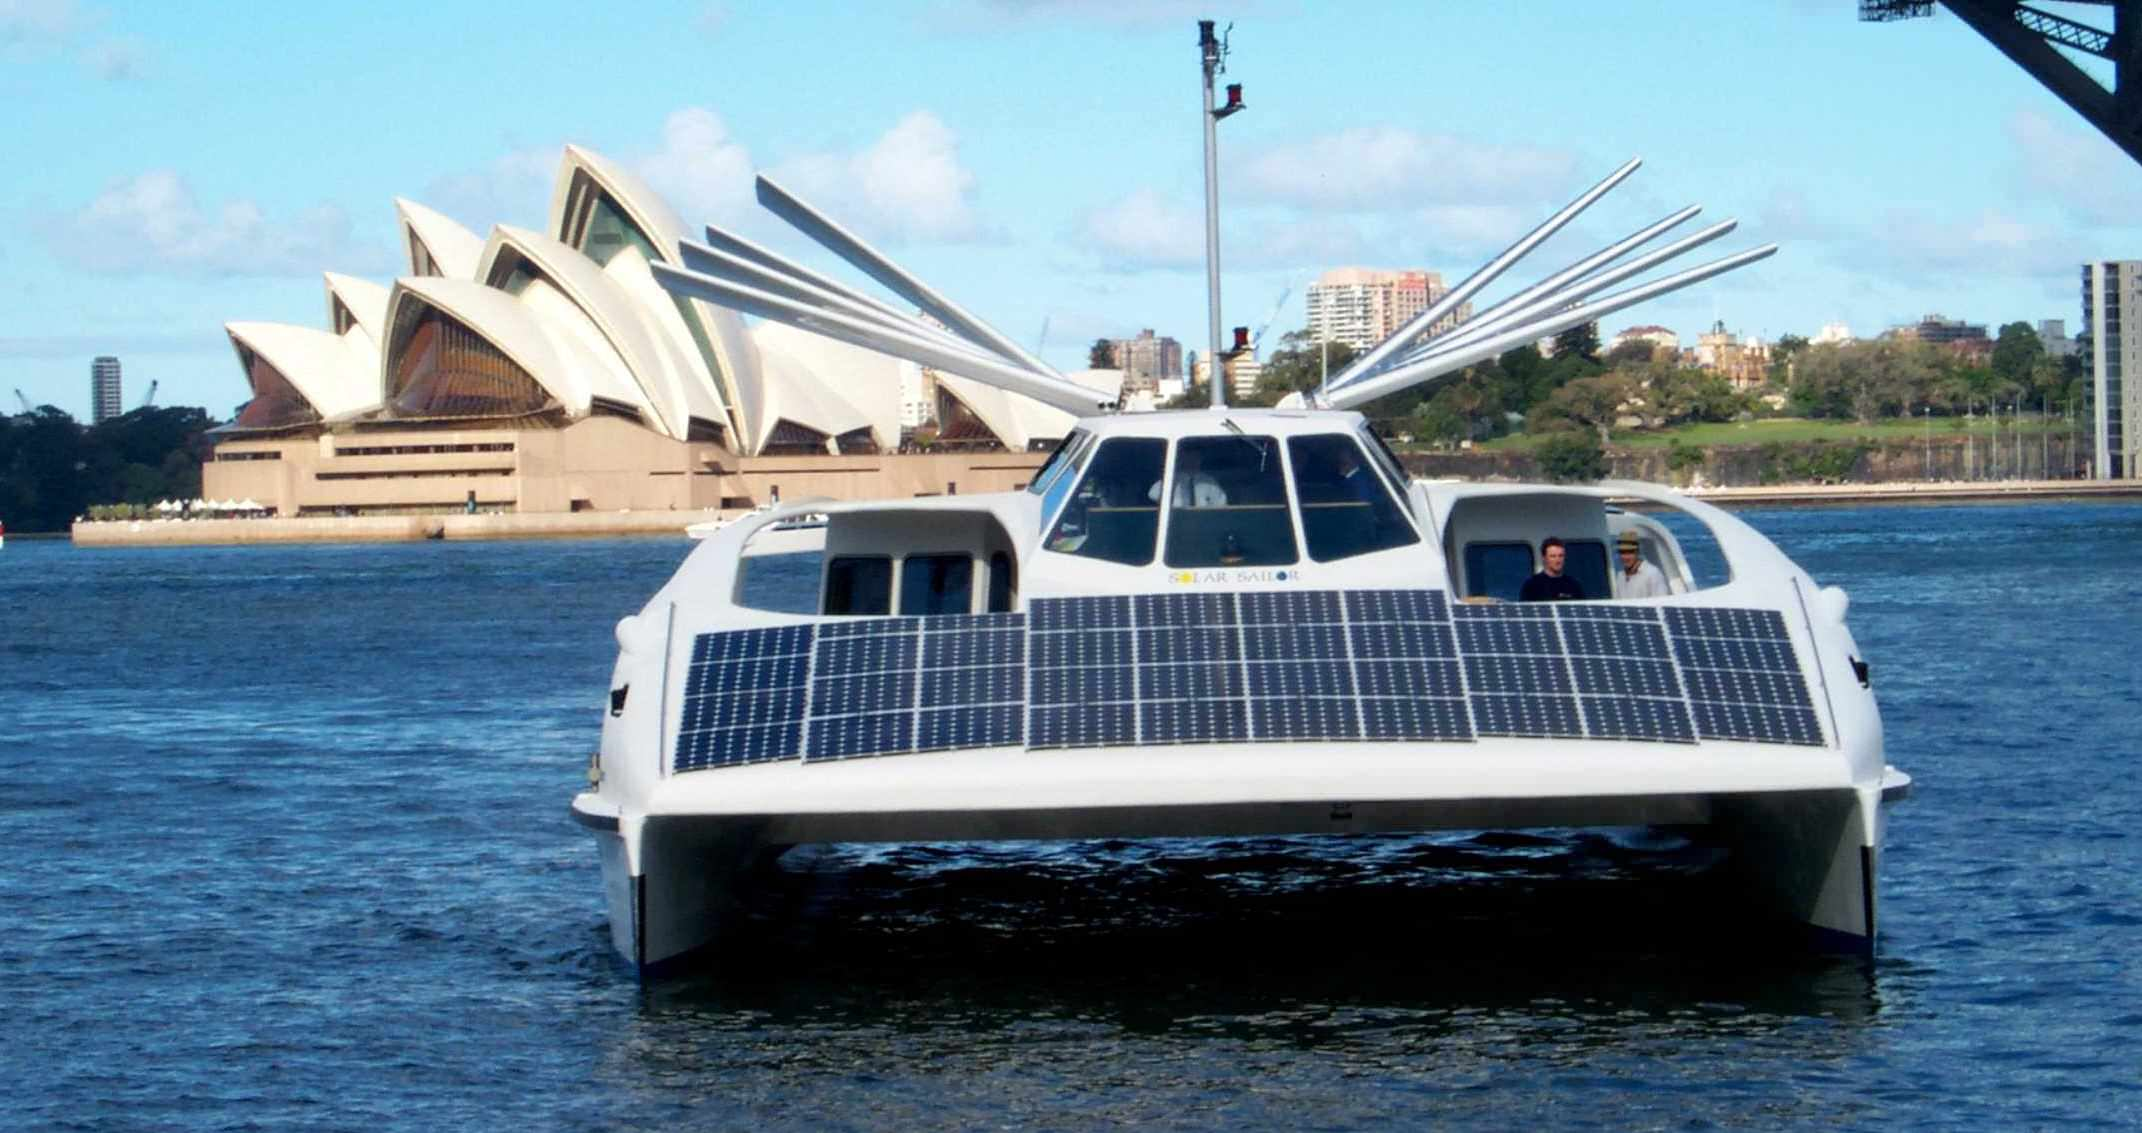 source: http://www.solarnavigator.net/solar_sailor.htm